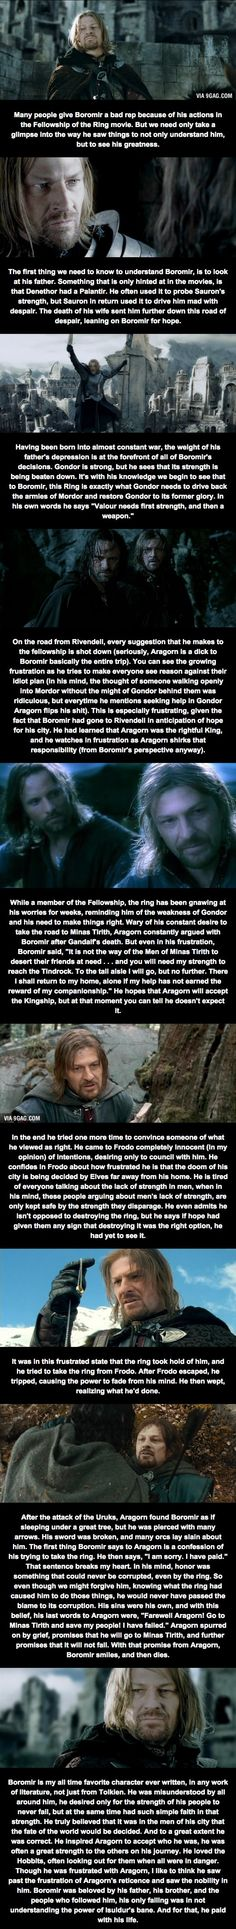 Relatively Unknown LoTR Facts - Boromir